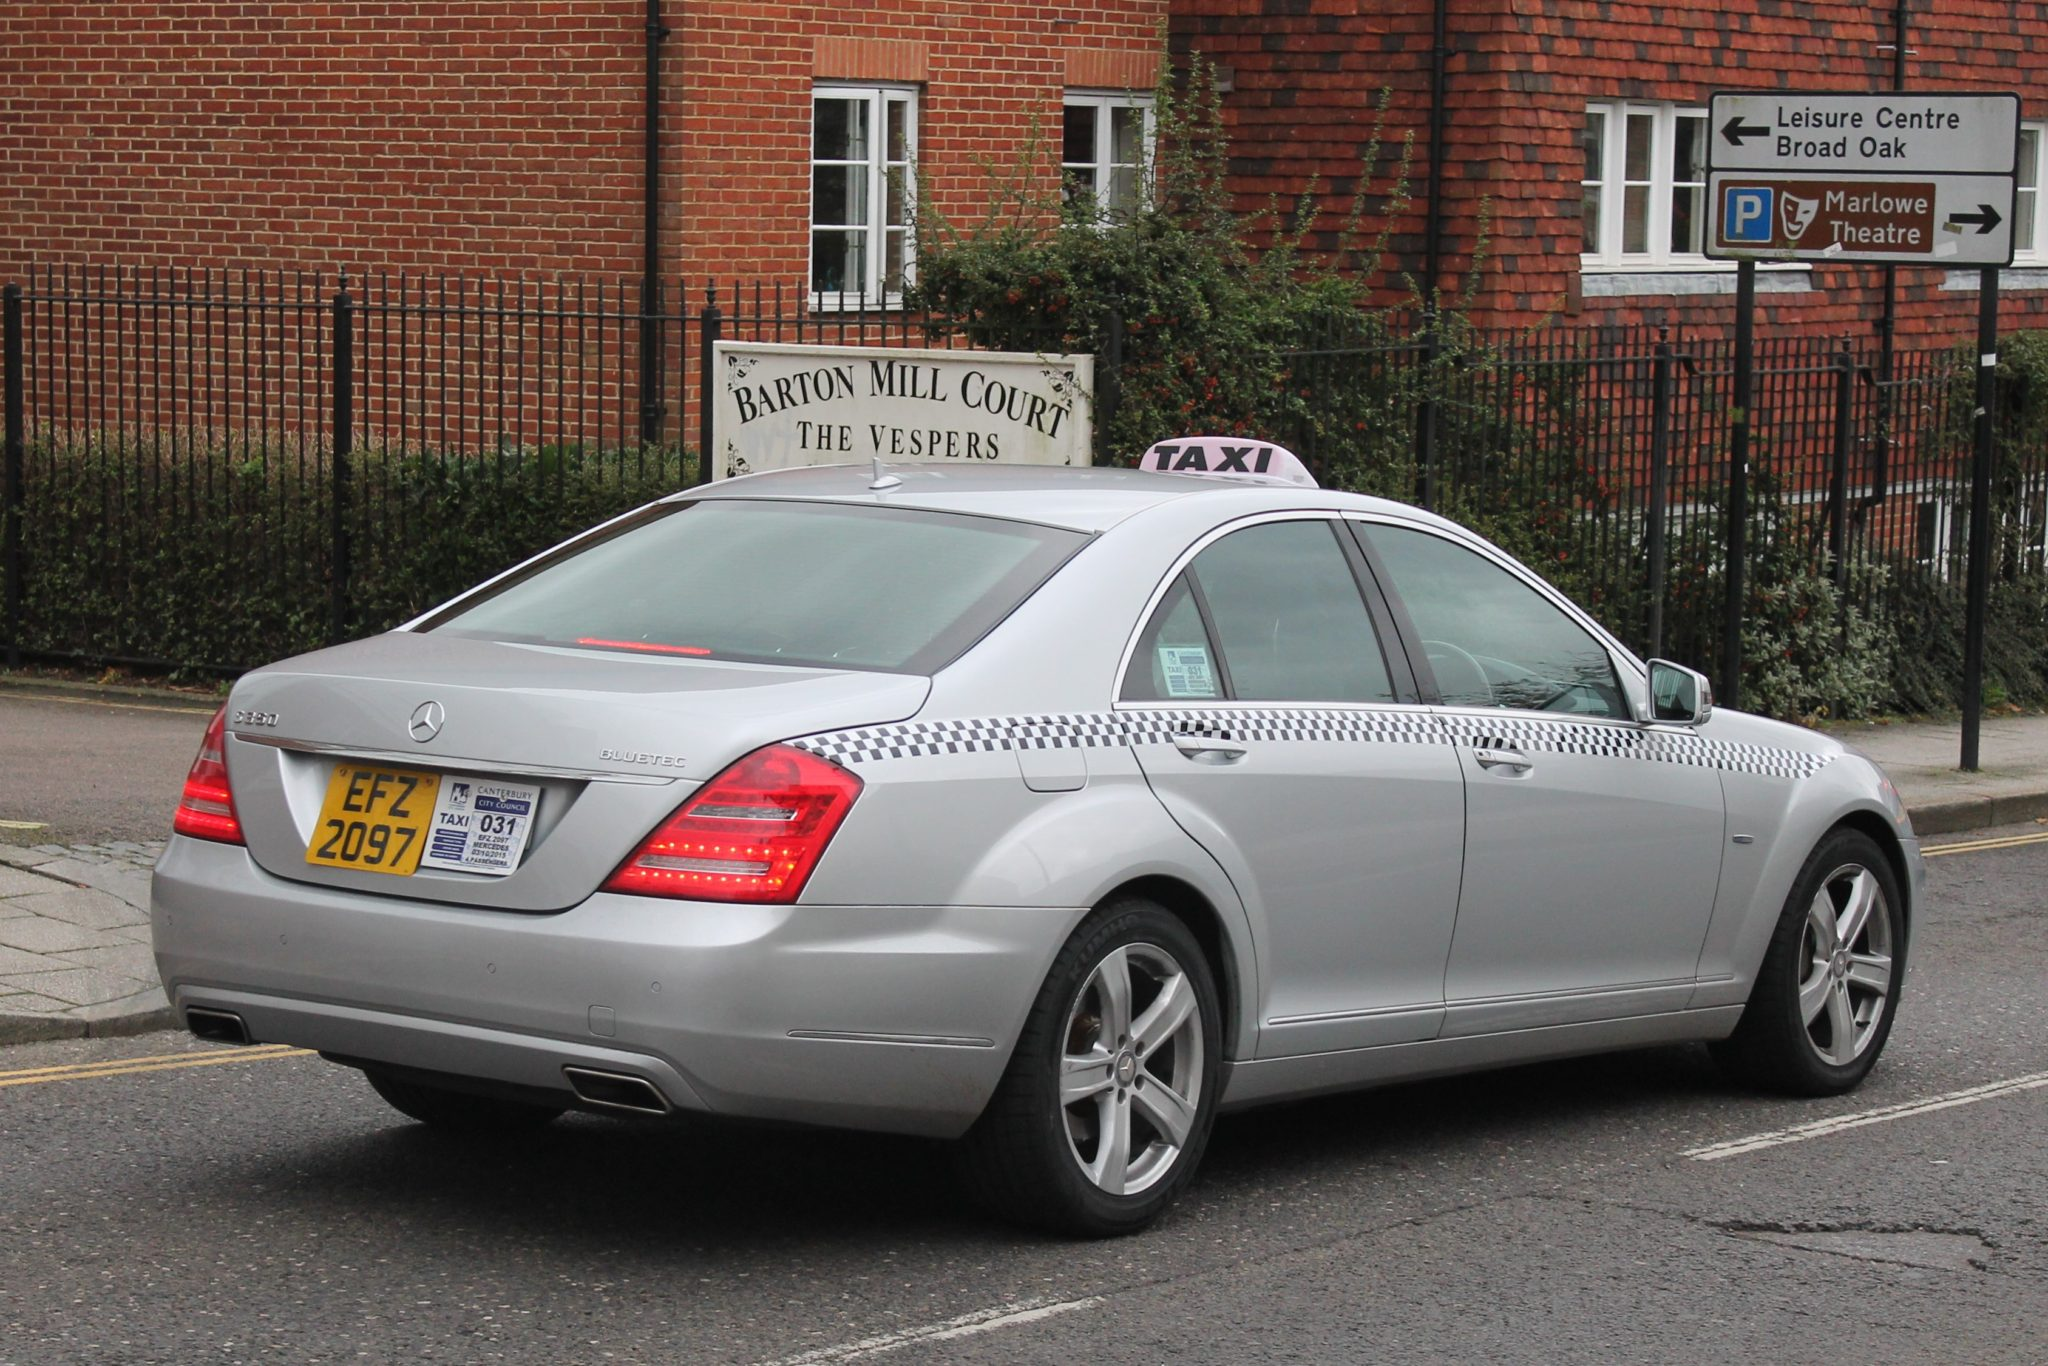 The Future of Taxi Design – How will it Affect Your Business?